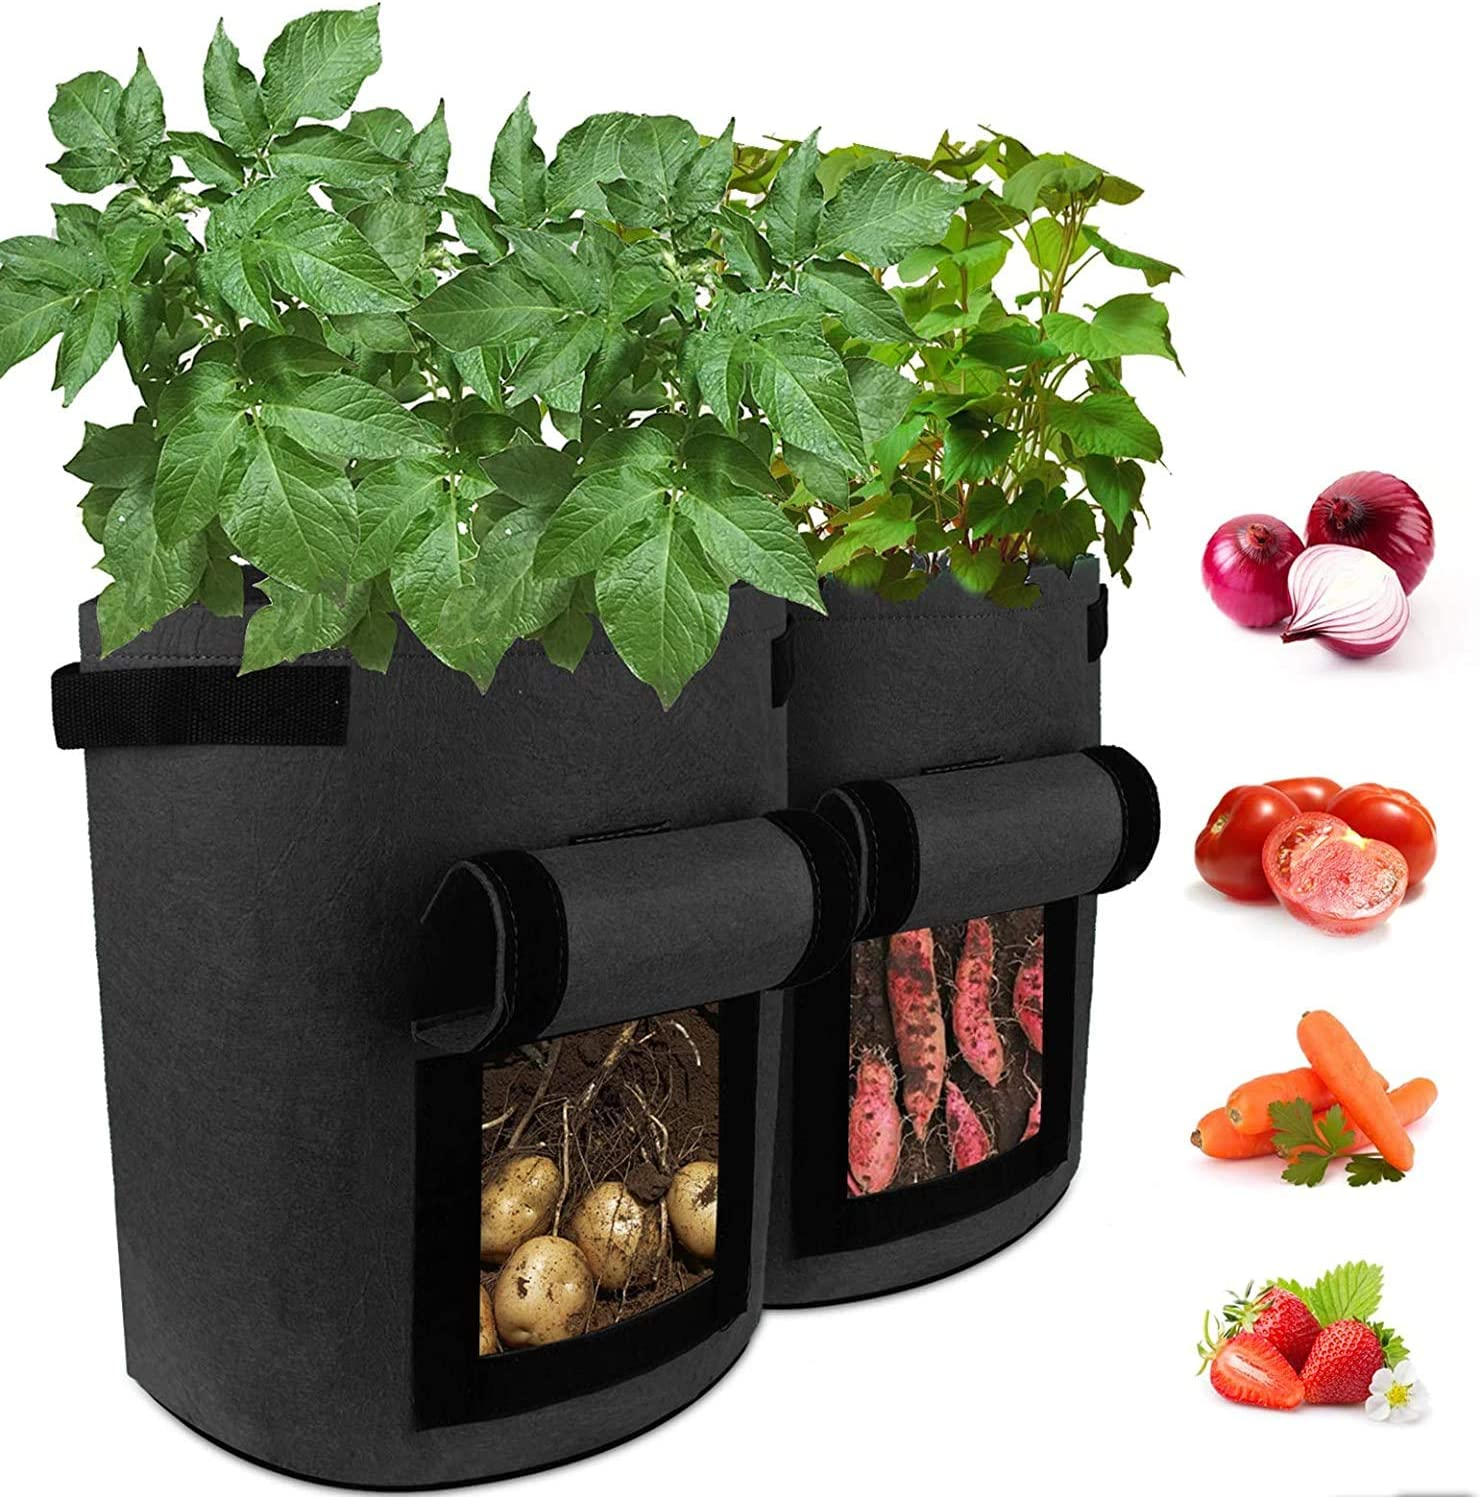 Garden Plant Grow Bag Large 10 Gallon Fabric Potato Growing Bags with Visualized Window, Large Vegetables Planters Pots Container for Garden Nursery Plants (10 Gallon) (Black)